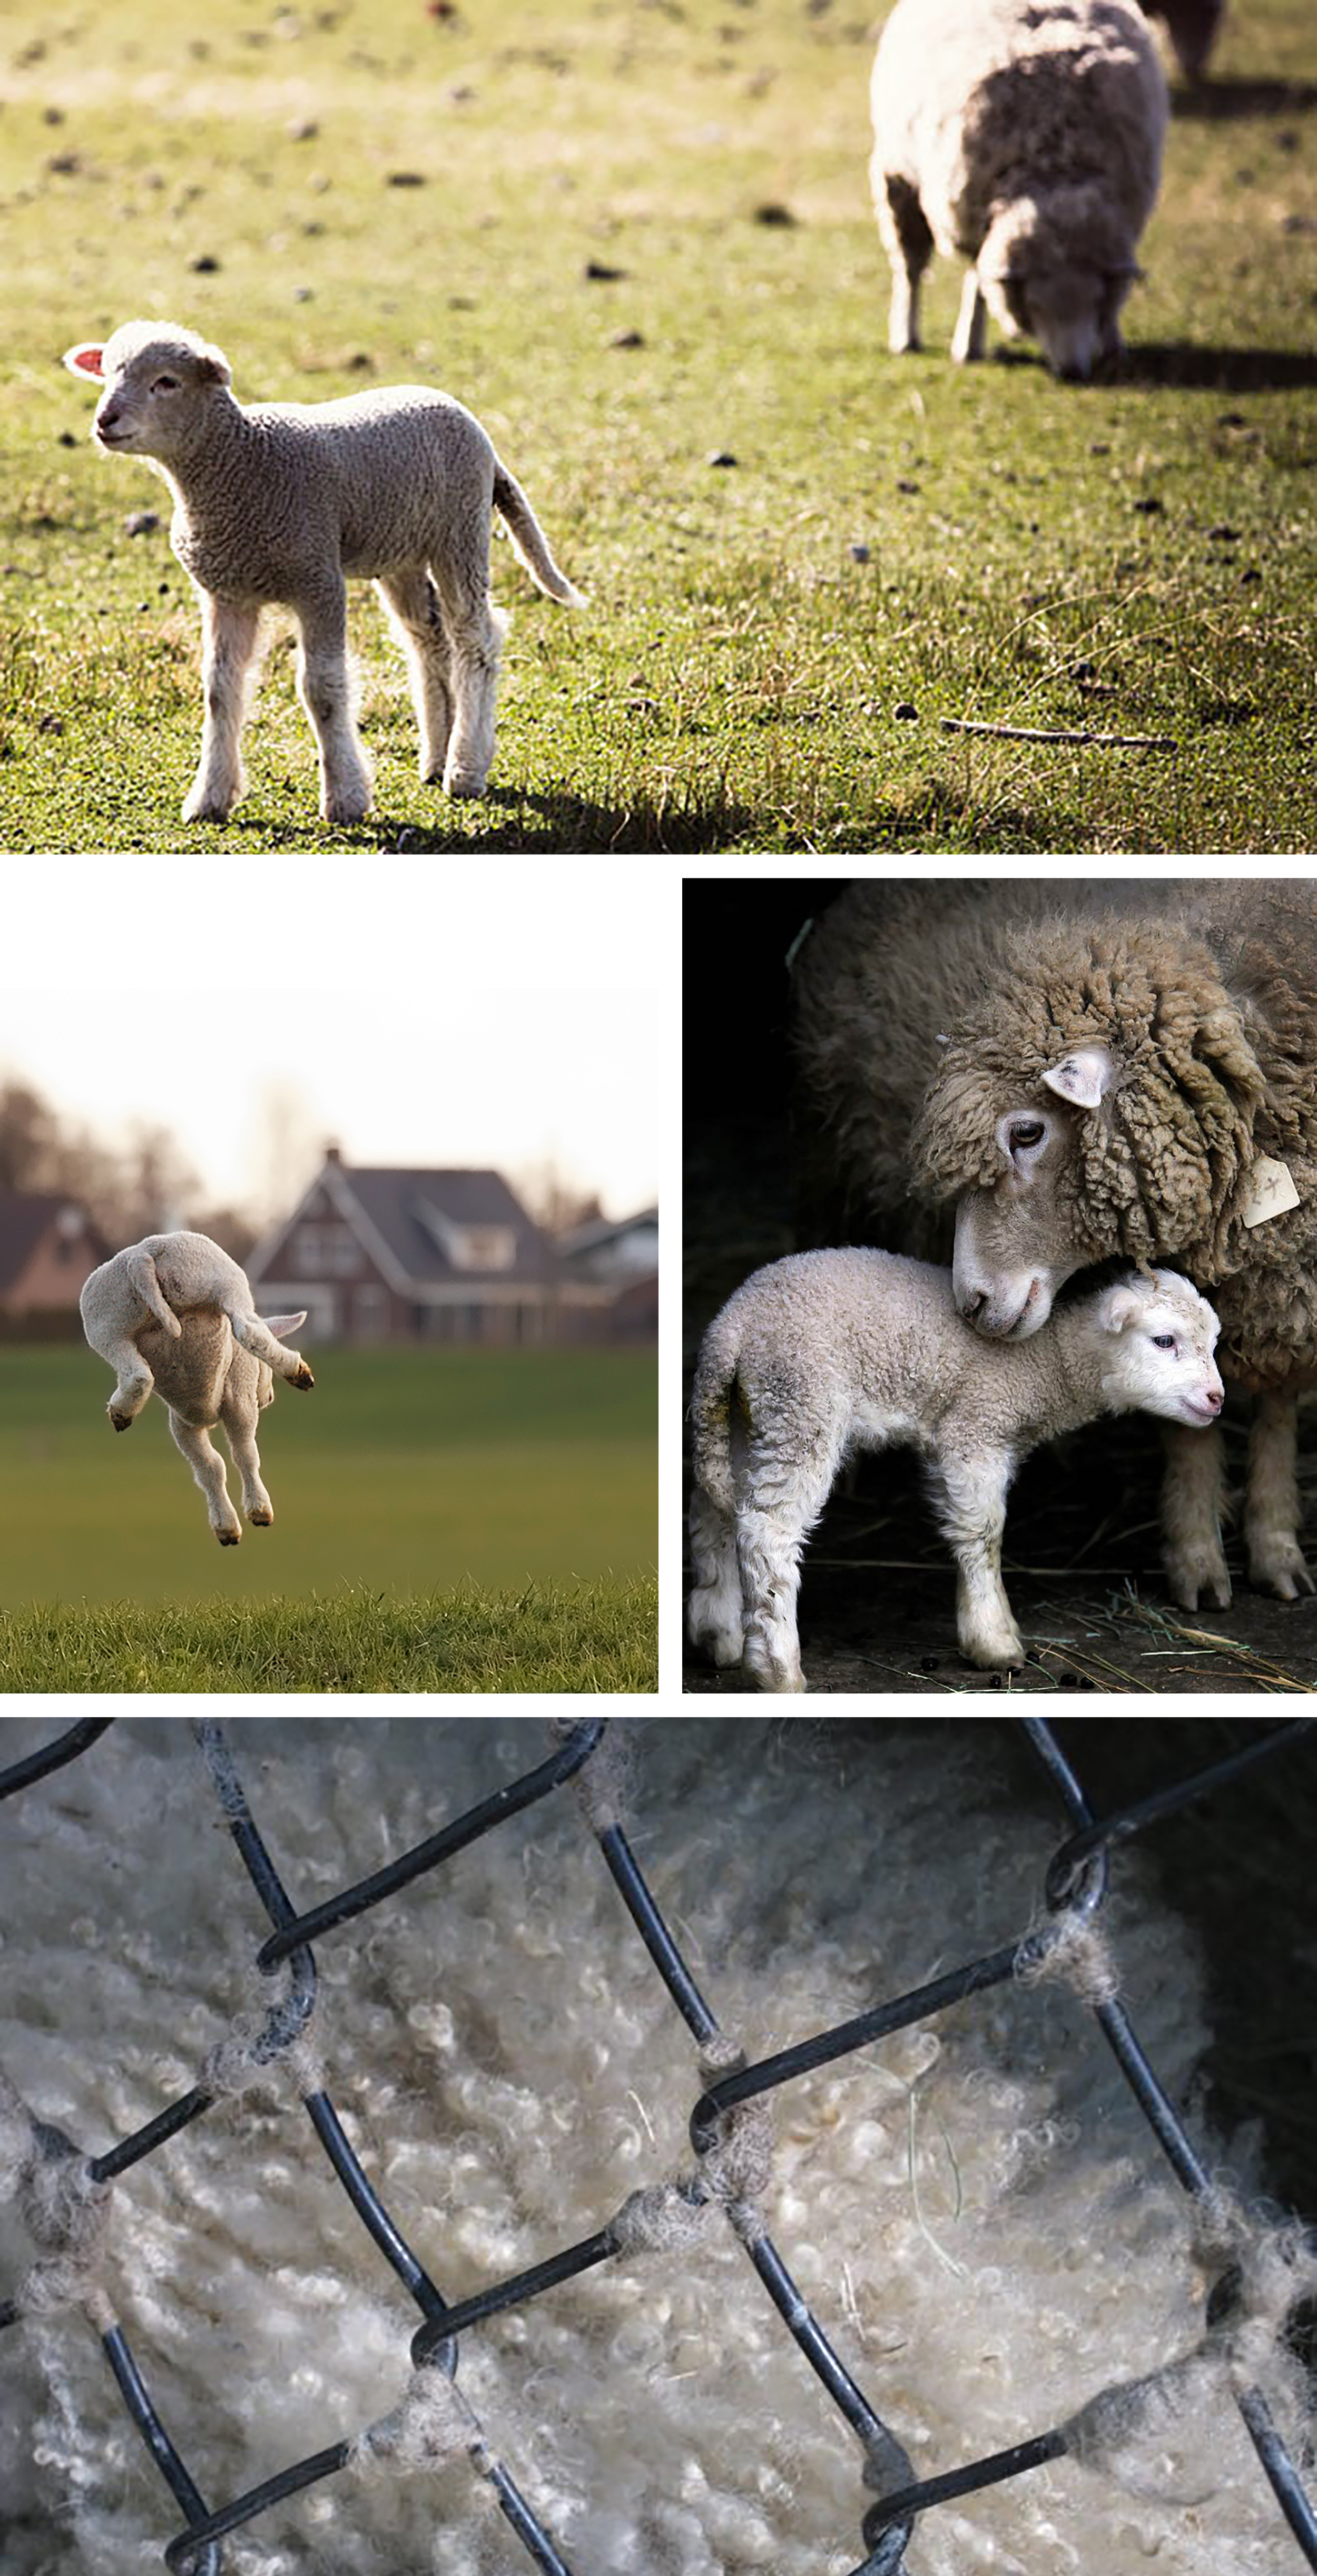 Top to bottom: Sheep in Patagonia from  Ann Street Studio ;  Leaping Lamb ; Lamb and its mother via  NBC ; closeup of a sheep at the Oatland Island Wildlife Center, photo by me.